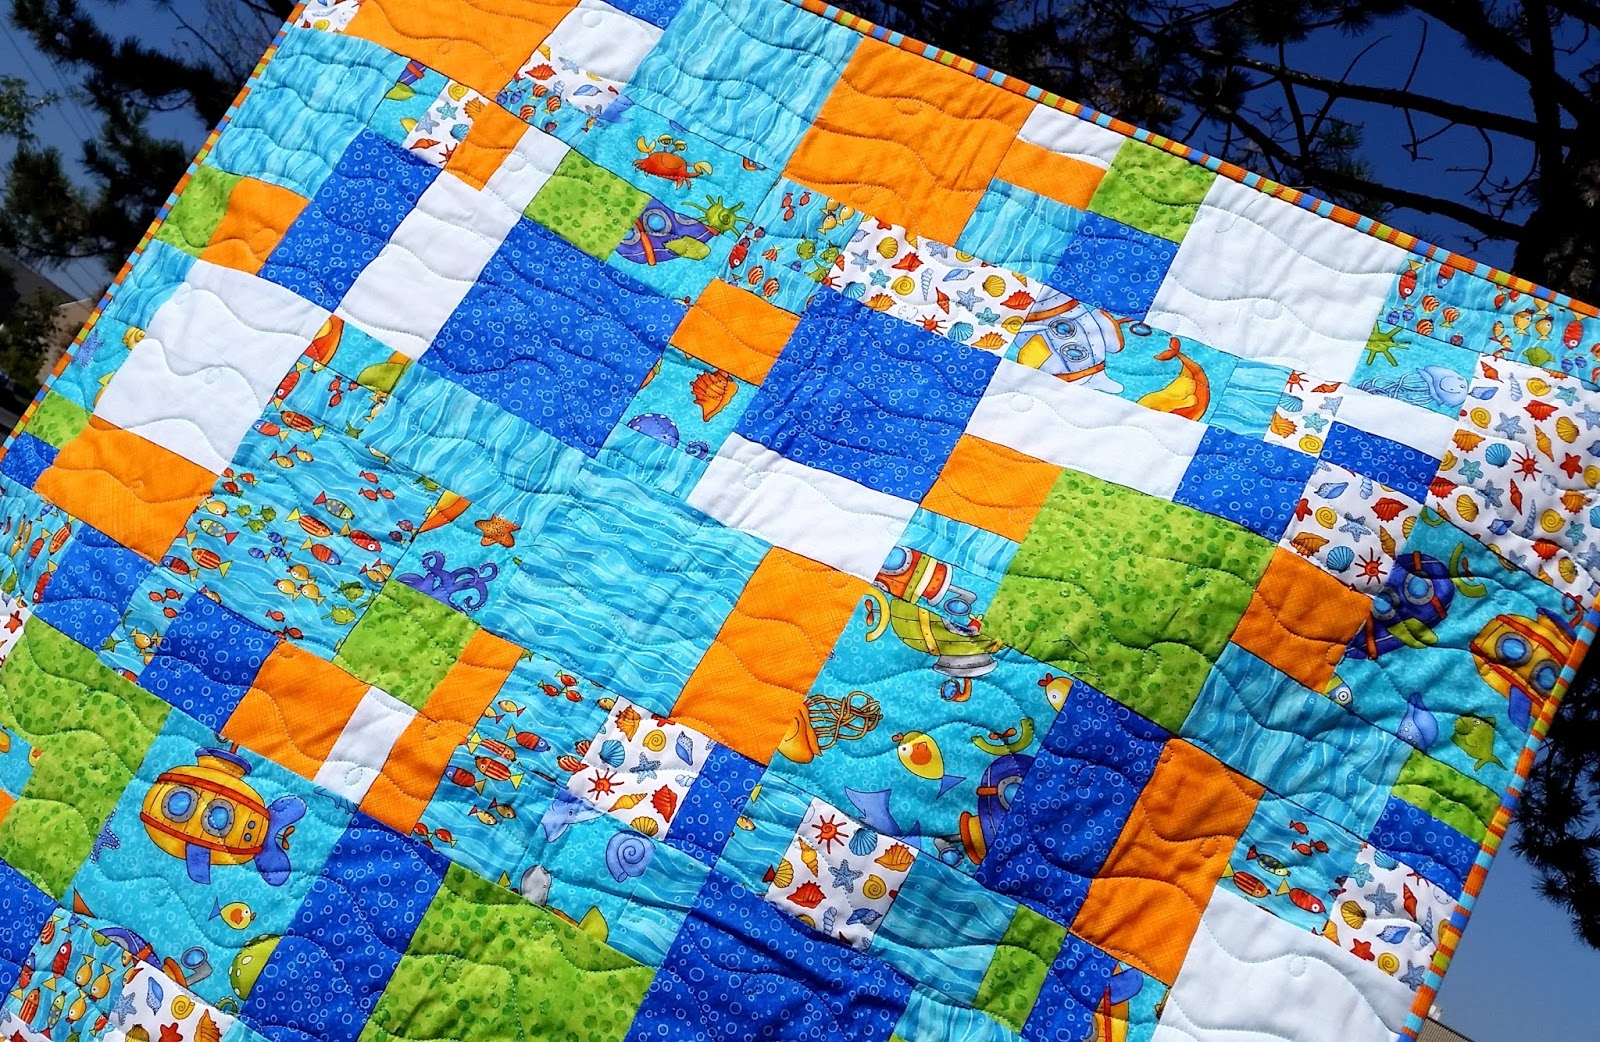 Sew Sisters Quilt Shop: Crazy Eights - Under the Sea - Baby Quilt Kit : crazy eights quilt pattern - Adamdwight.com